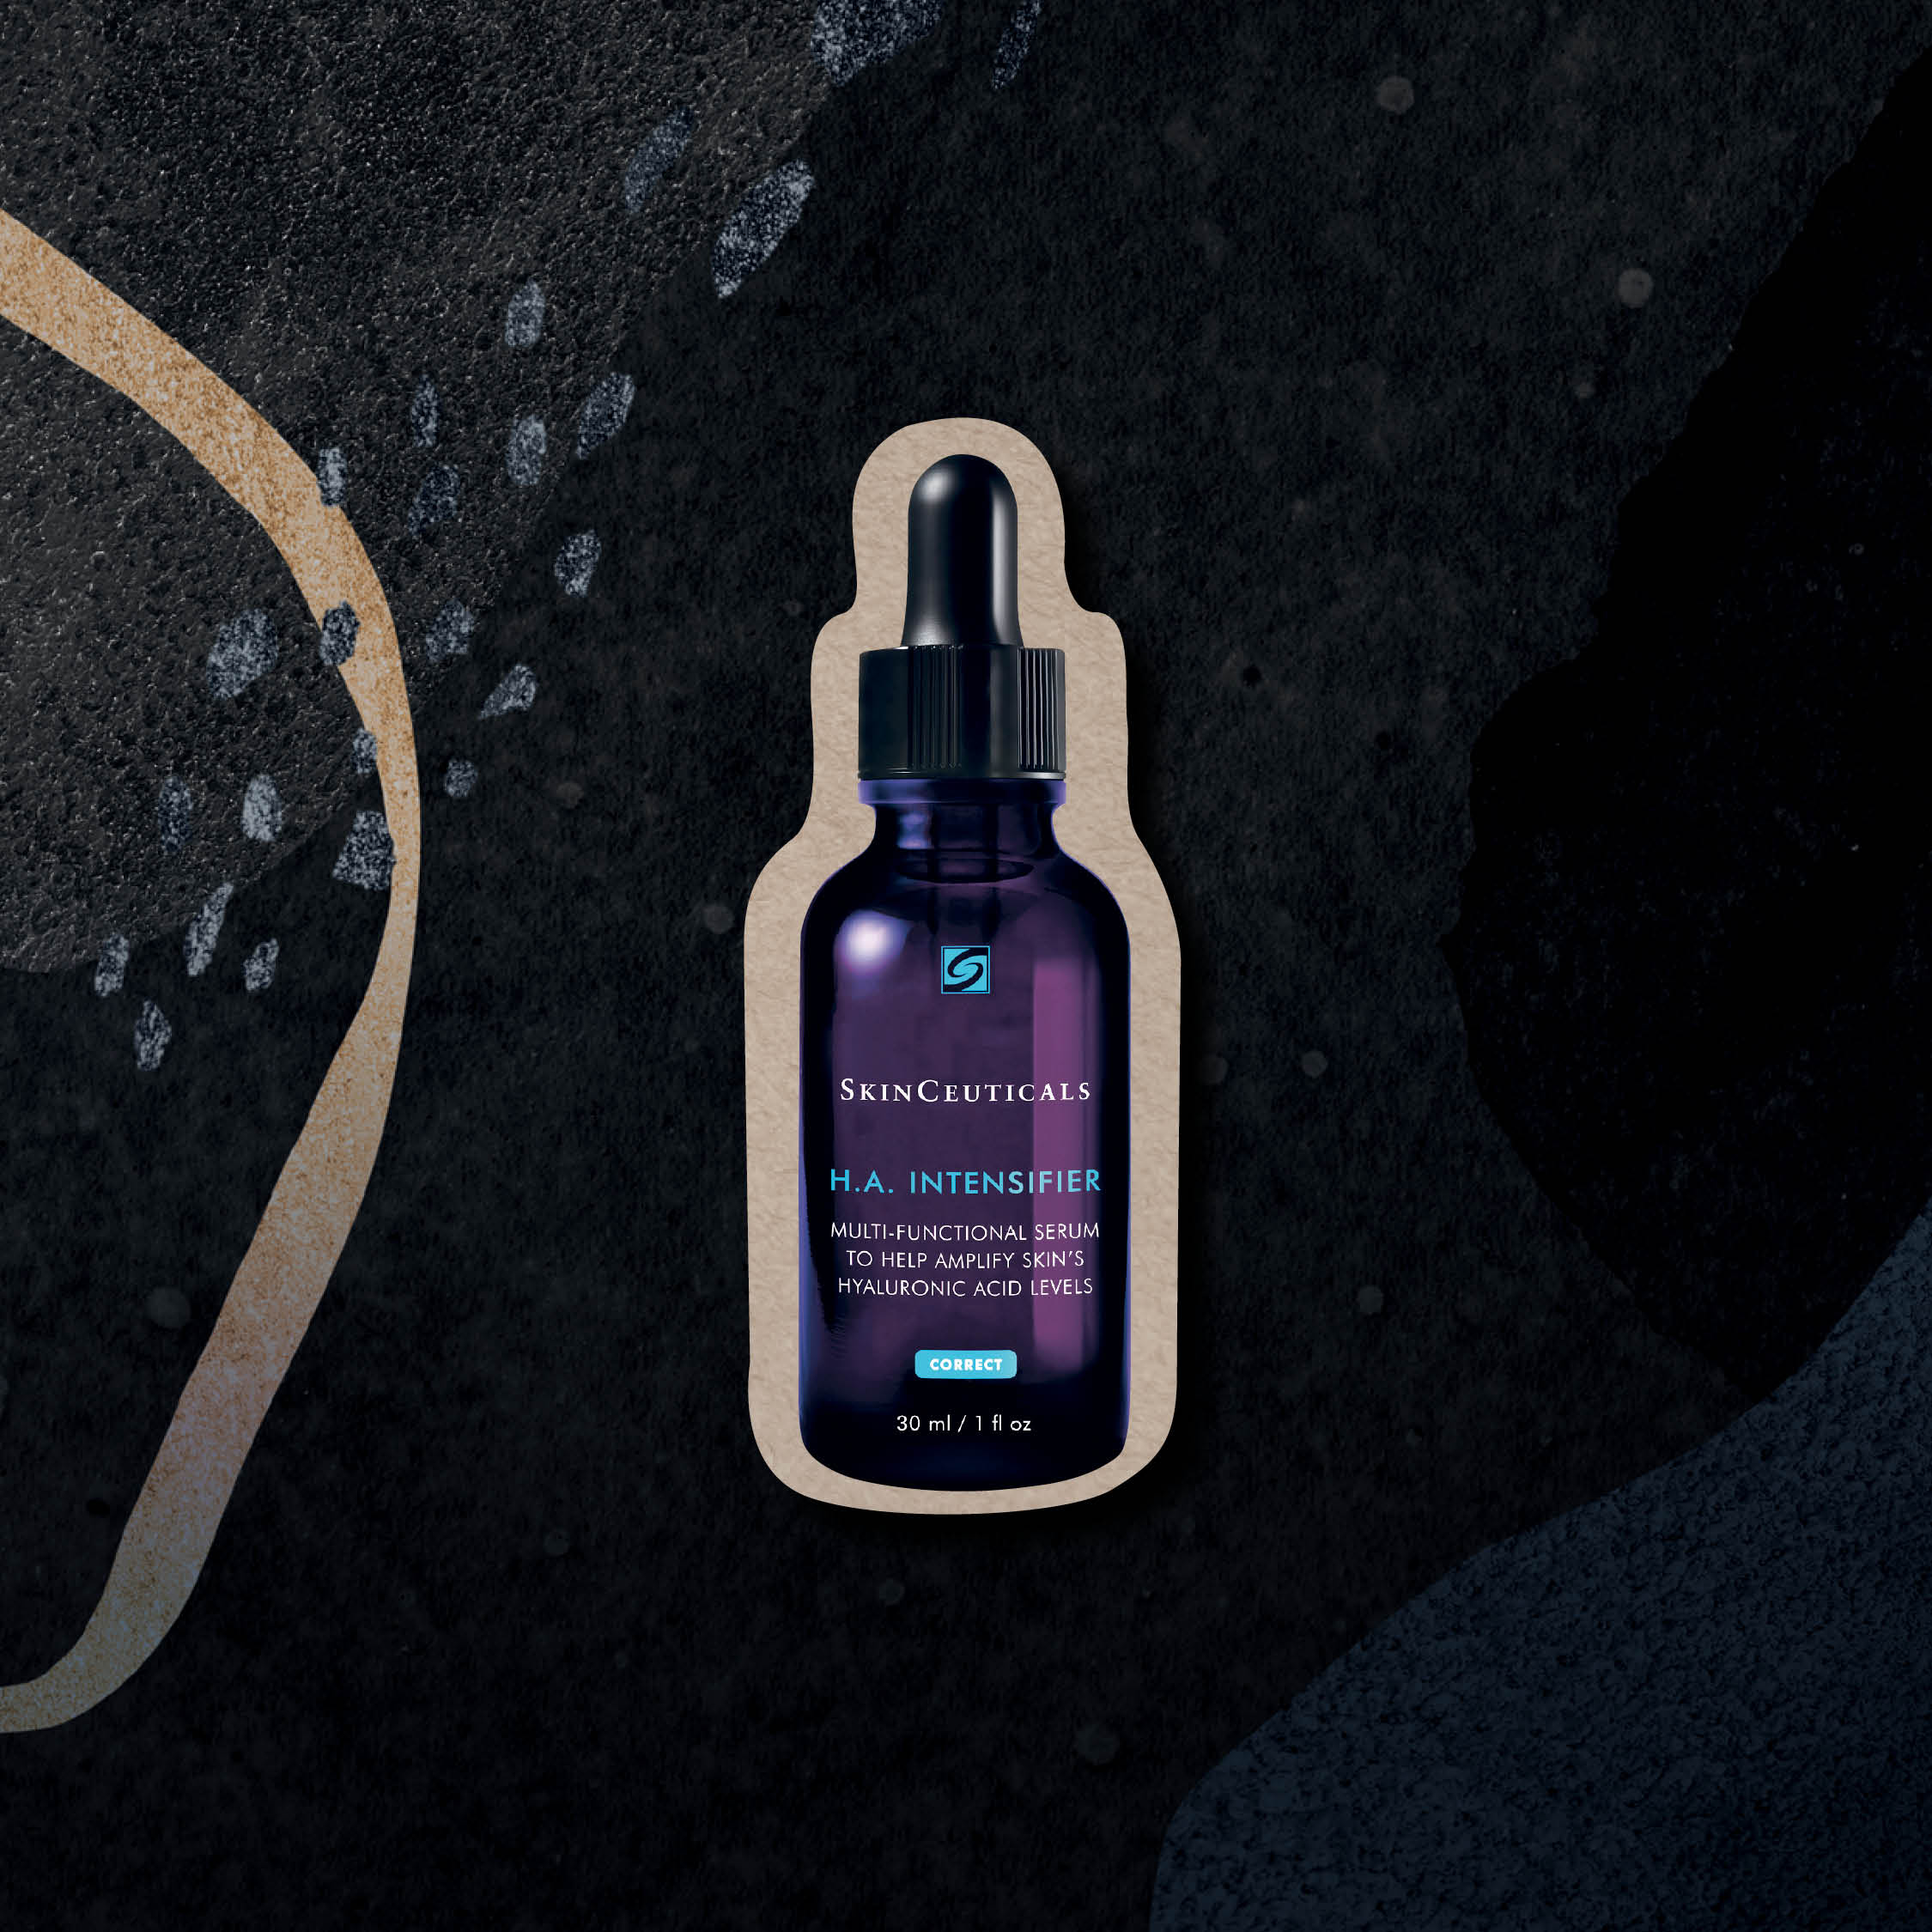 Grooming Awards 2020 - Best Serum for Dry Skin. Art Direction: Jonathan Tai